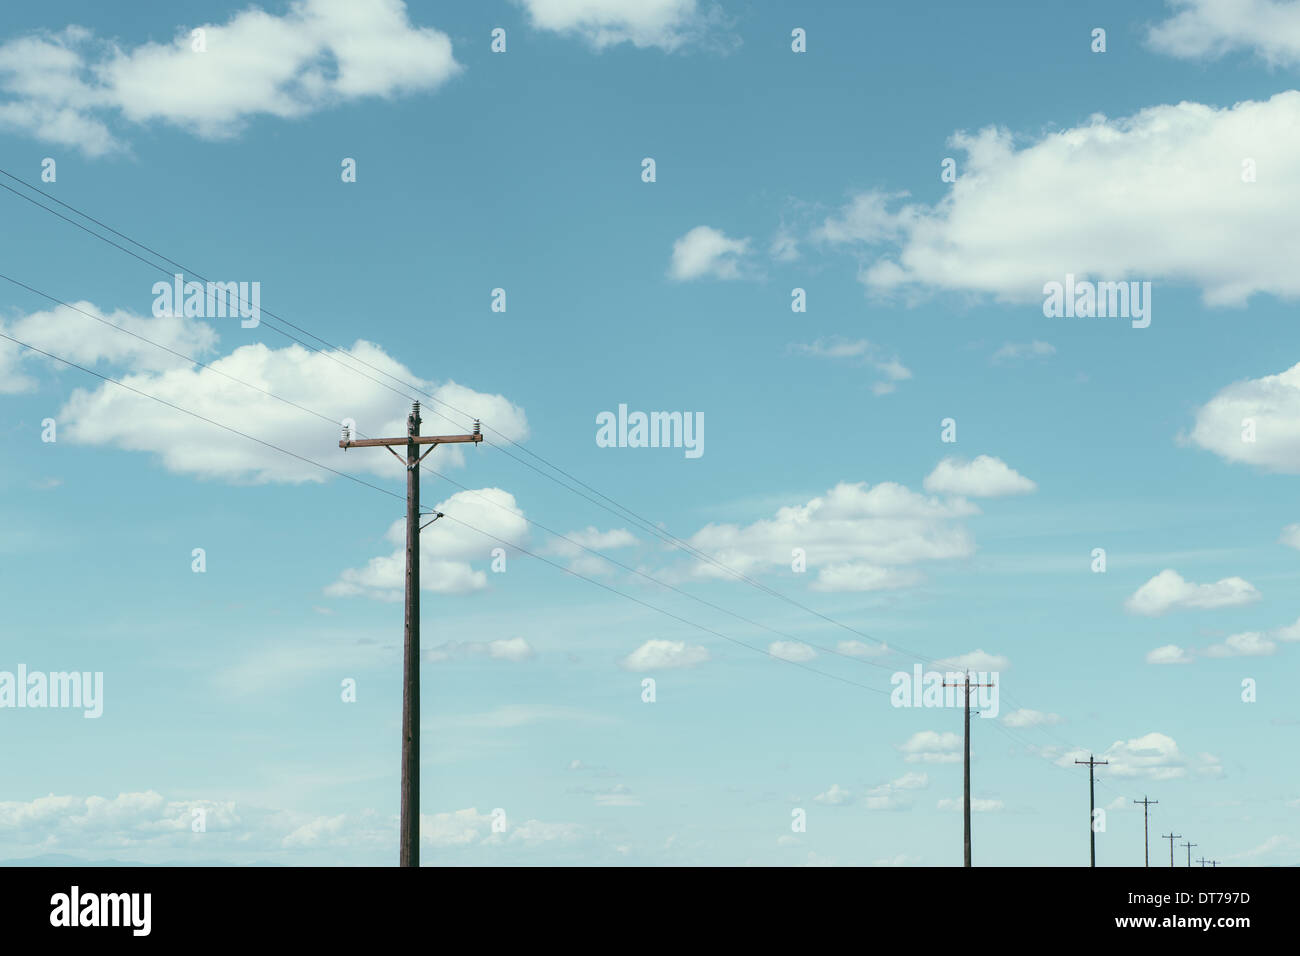 Telephone poles, power lines and cloudy sky, near Quincy - Stock Image